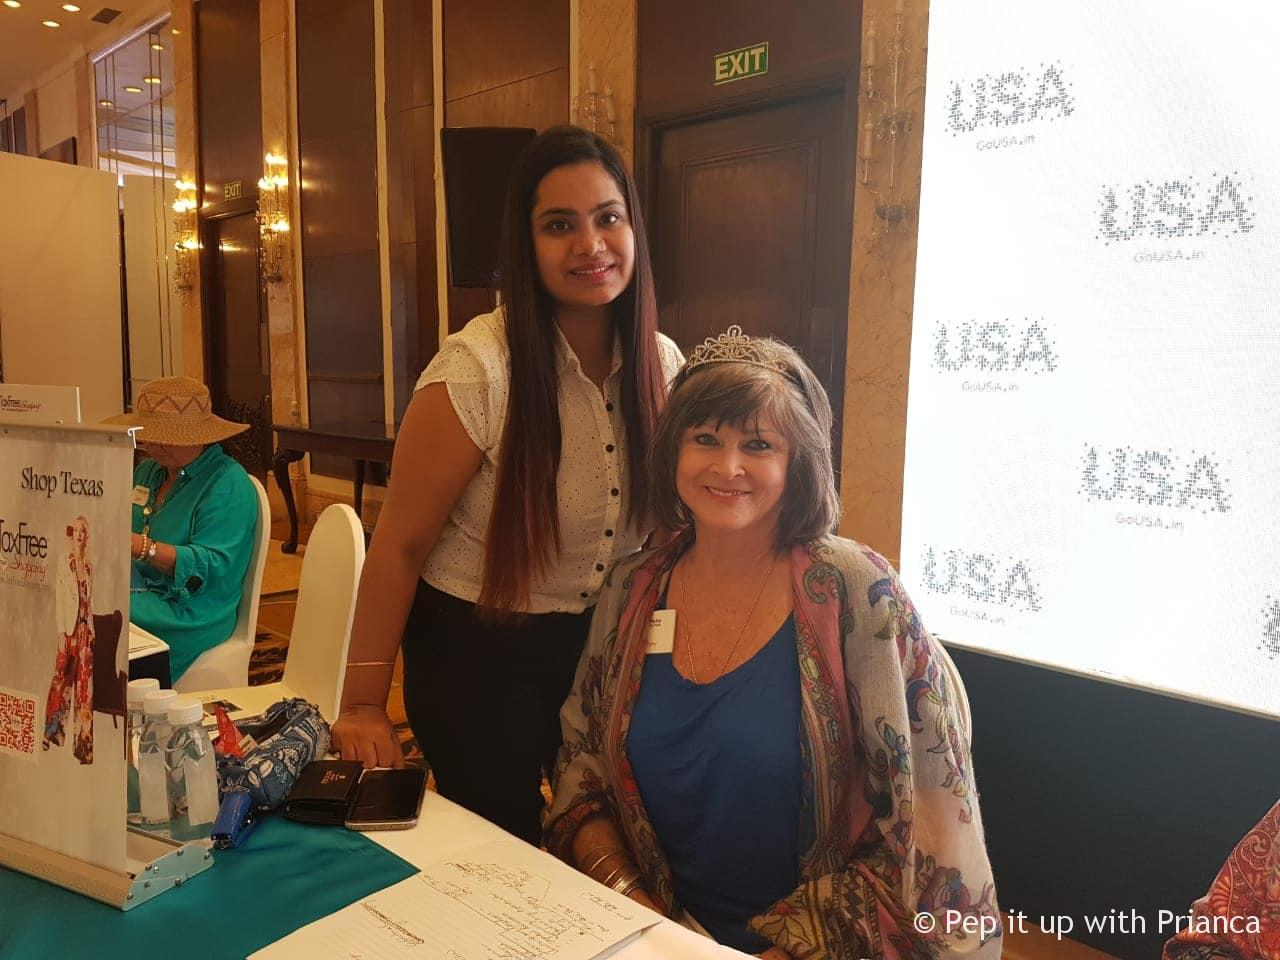 Brand USA India mission Carolyn Petty - Brand USA Organizes India Travel Mission - Experience the Best of USA with Go USA